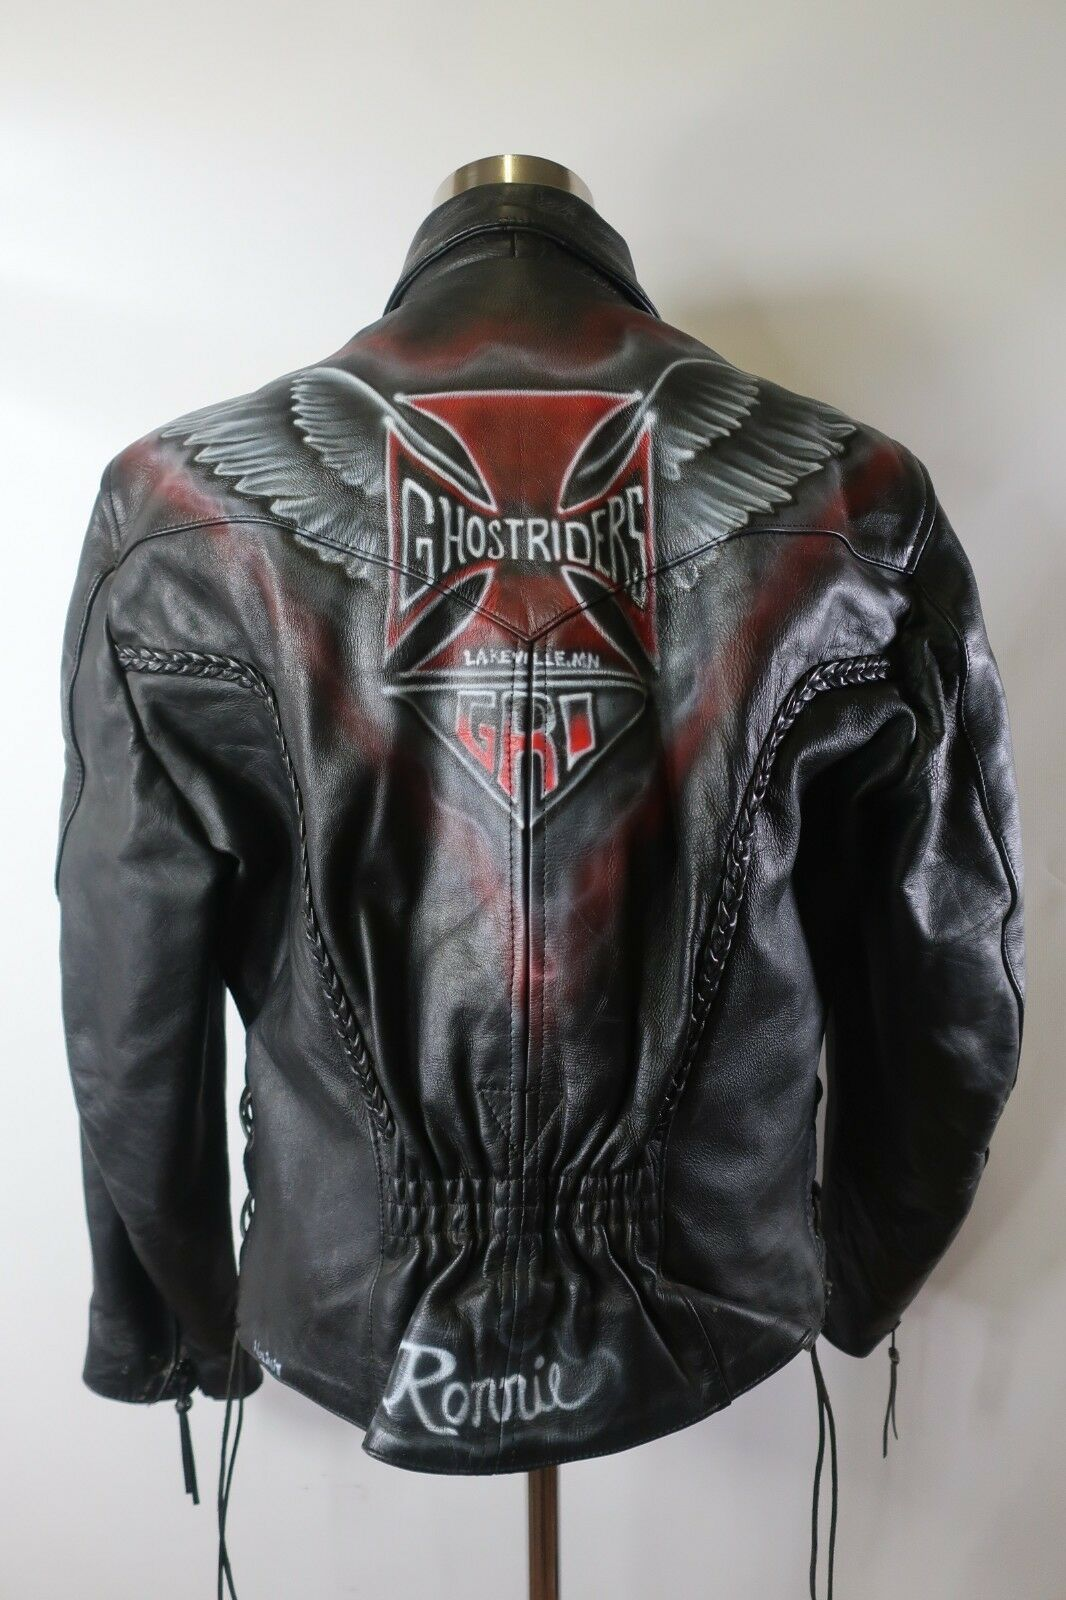 Forsale At 14 D03424 Vtg Interstate Full Zip Fringe Motorcycle Leather Jacket Size L Woman Leather Jacket Leather Jackets Women Leather Motorcycle Jacket [ 1600 x 1066 Pixel ]